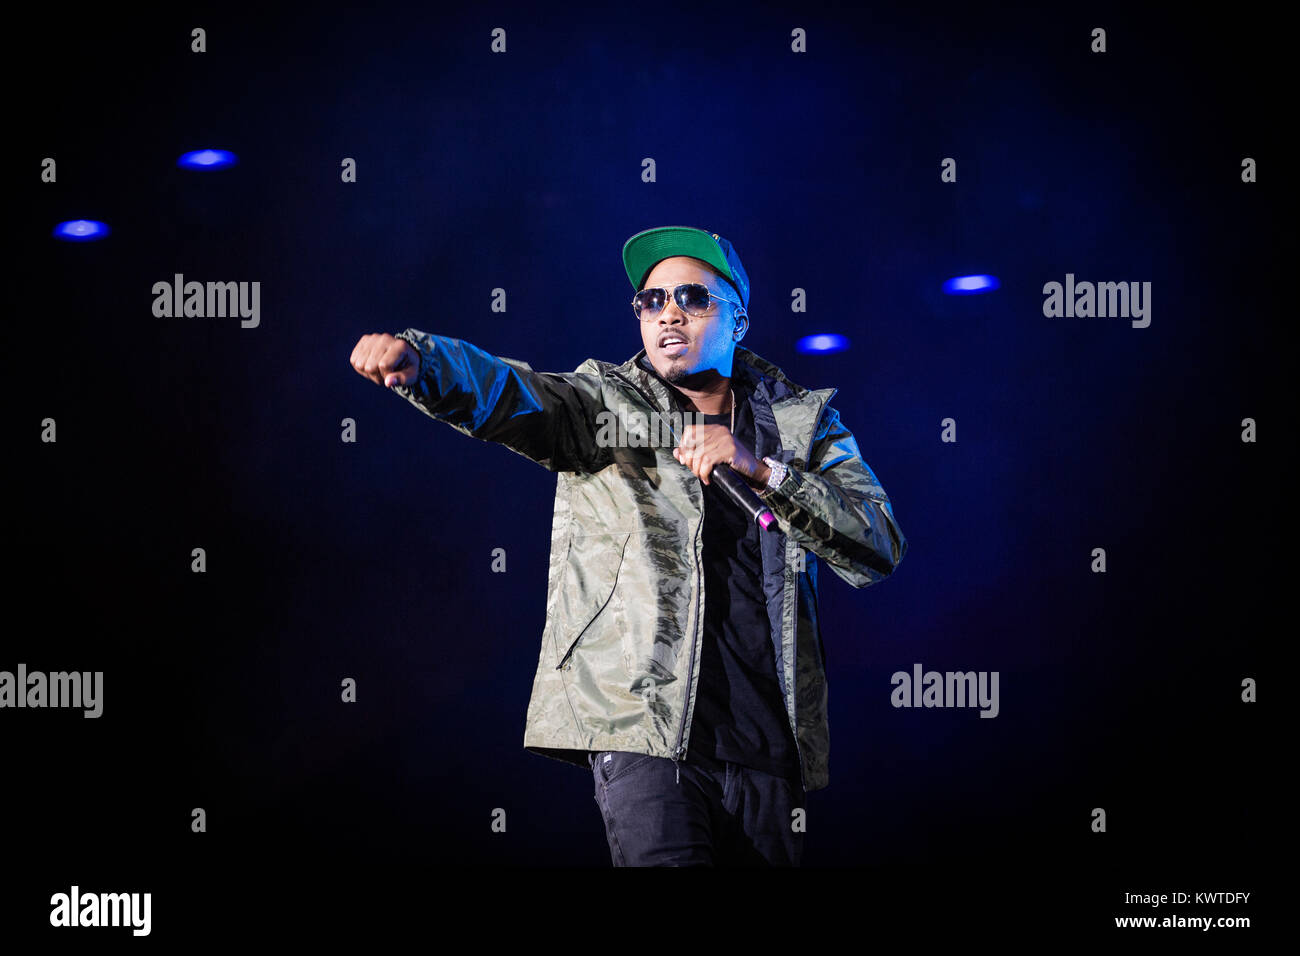 The American rapper and lyricist Nas performs a live concert during the Danish music festival Roskilde Festival - Stock Image